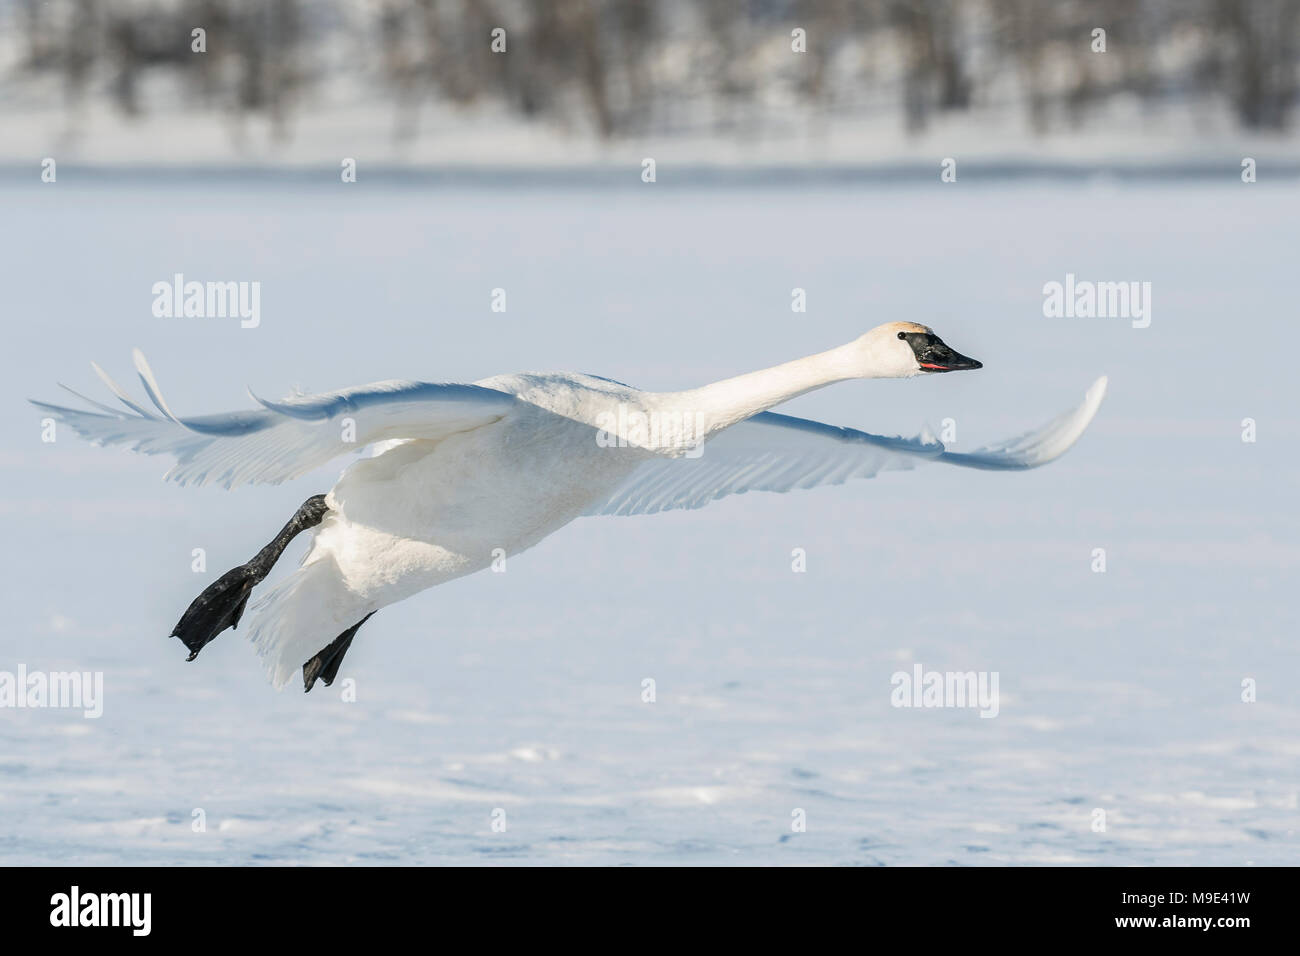 Trumpeter swan (Cygnus buccinator) landing on the frozen St. Croix River. WI, USA, early January, by Dominique Braud/Dembinsky Photo Assoc - Stock Image